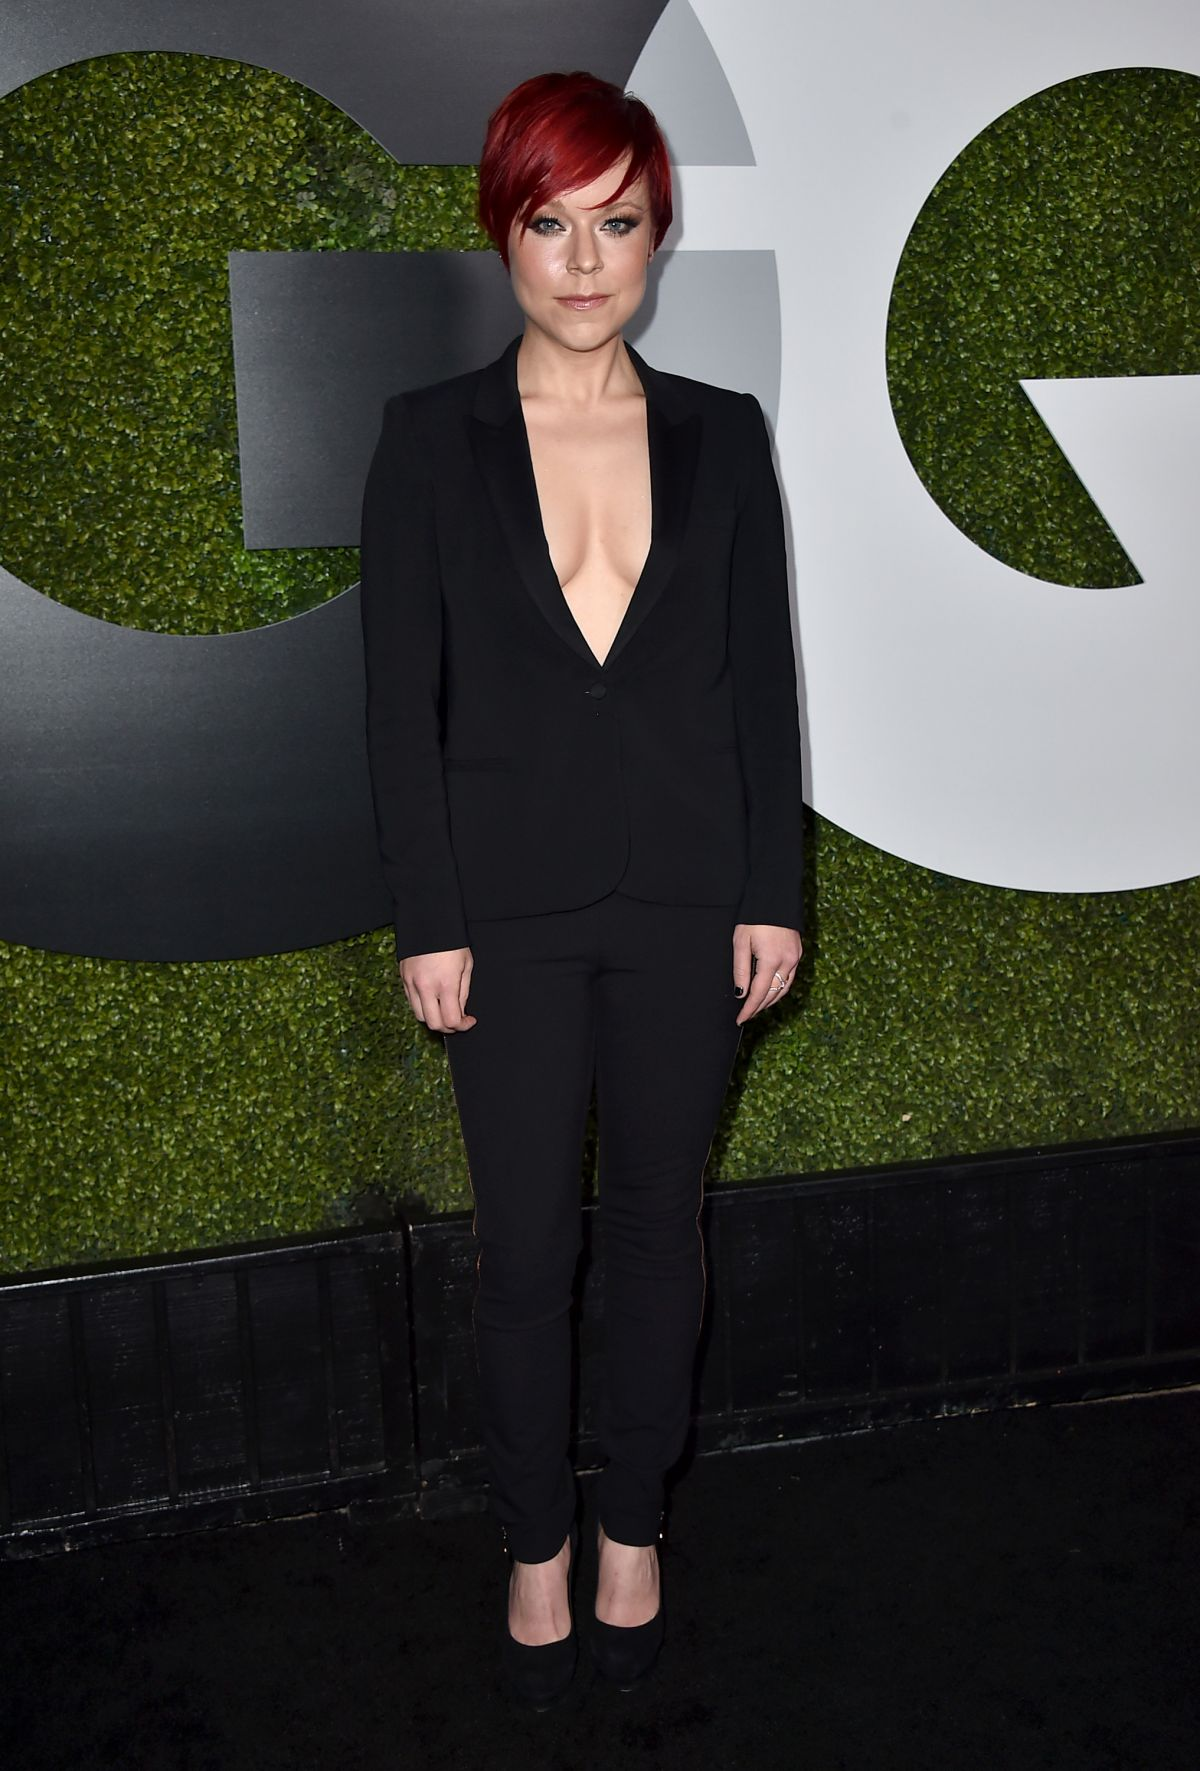 TINA MAJORINO at GQ Men of the Year Party in Los Angeles 12/03/2015